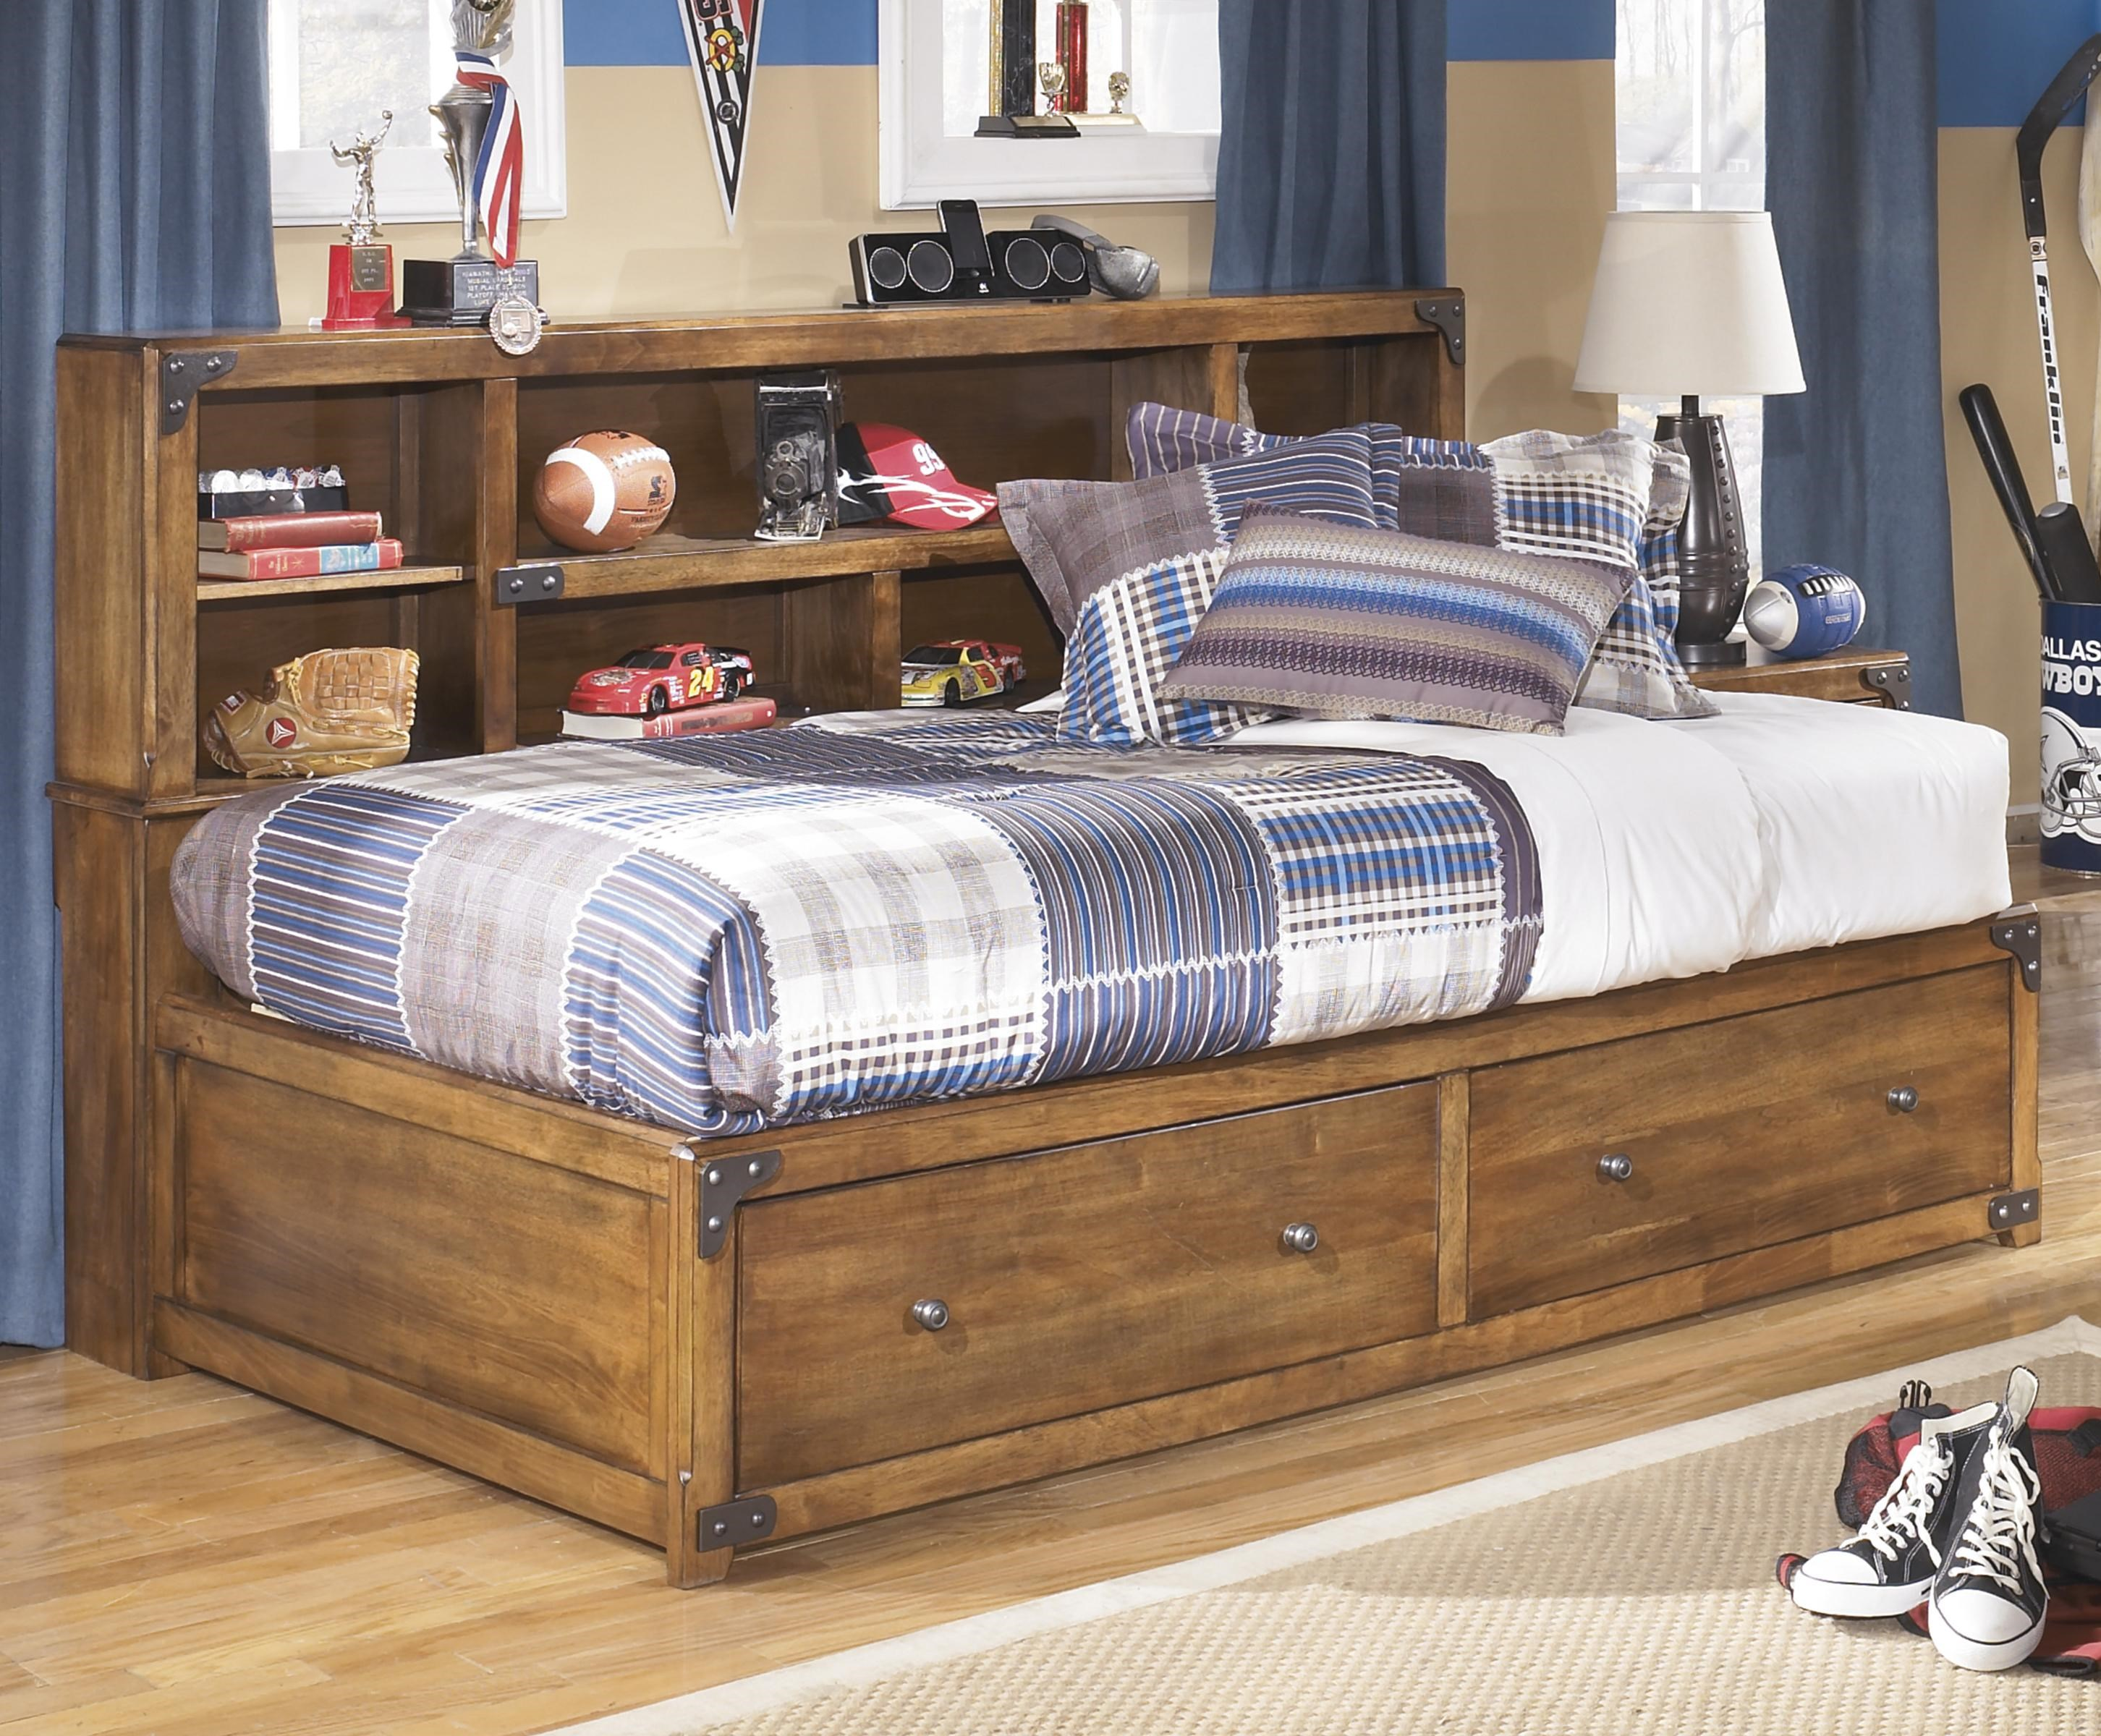 Delburne Twin Bookcase Bed With Footboard Storage By Signature Design By Ashley At Lapeer Furniture Mattress Center